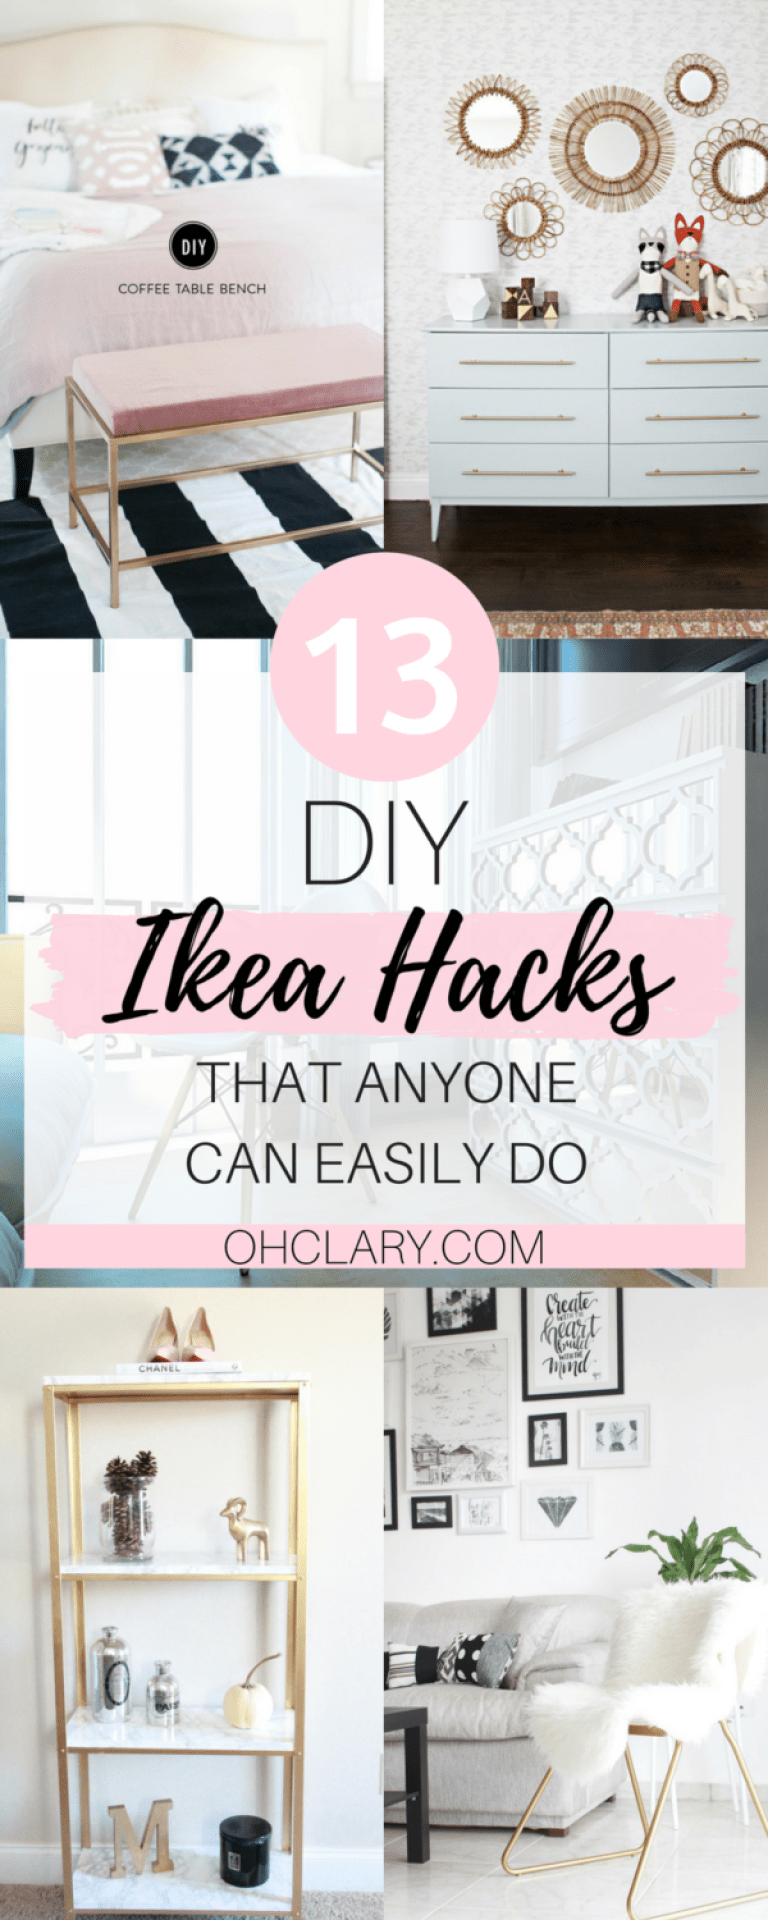 13 DIY IKEA Hacks to Transform Your Furniture On a Tiny Budget -   24 diy furniture ikea ideas